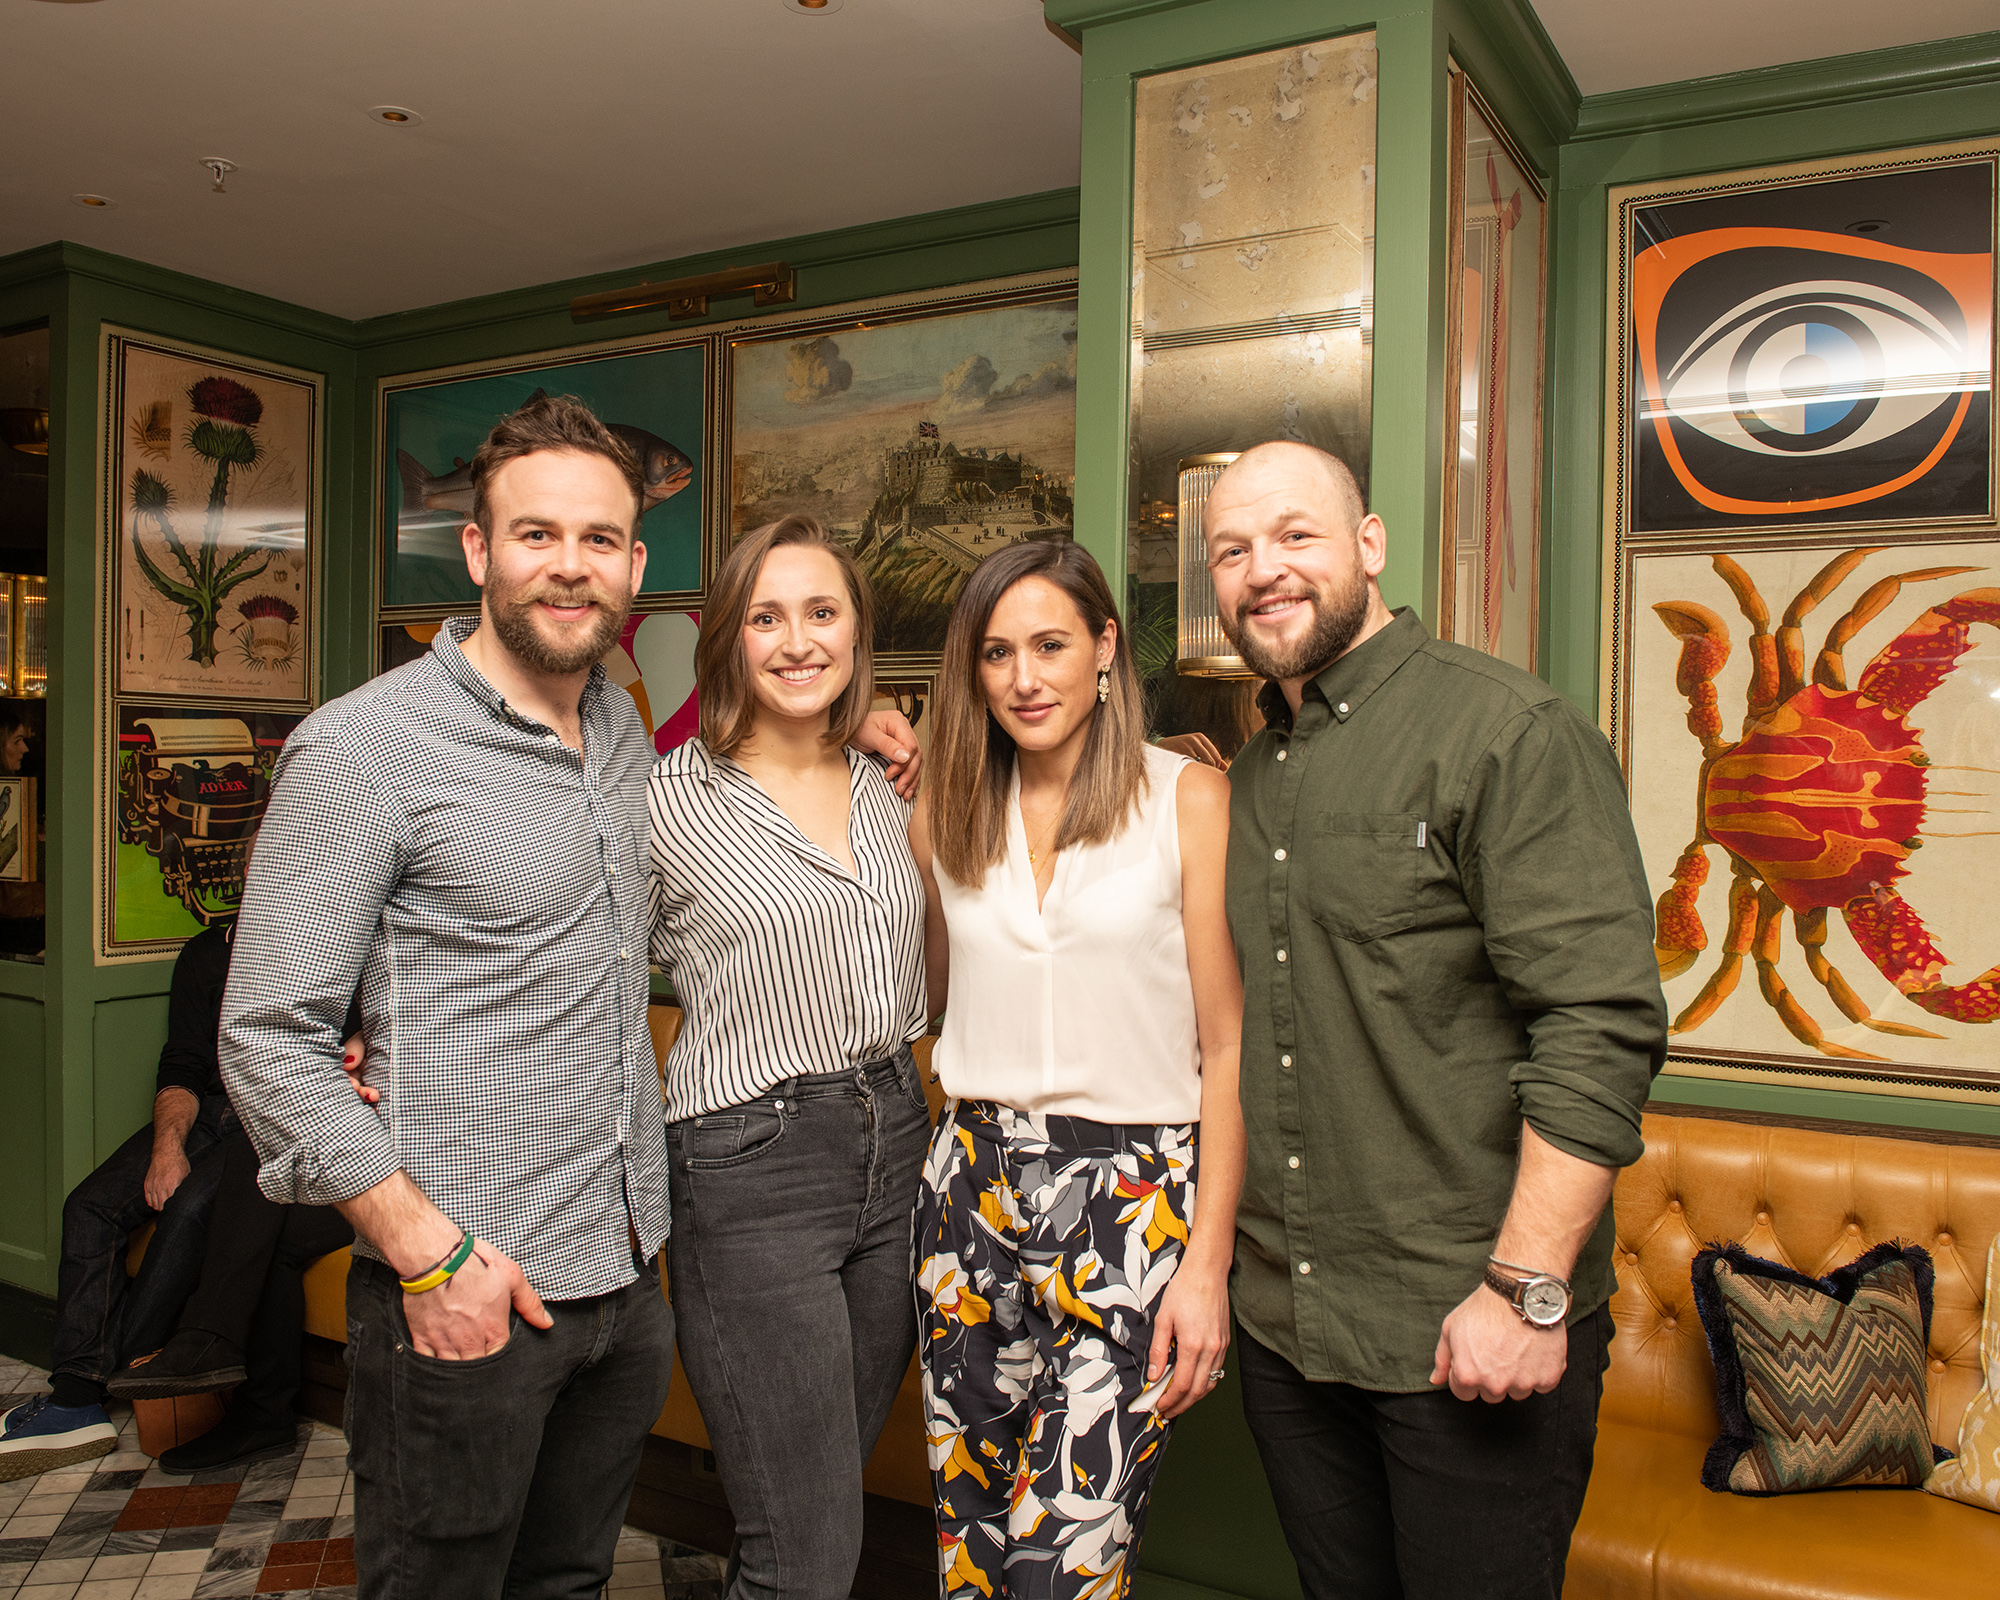 From left to right: Ruaridh Jackson (Co-founder of The Garden Shed Drinks Company), Kirstin Jackson, Maxine Grant, Ryan Grant (Co-founder of The Garden Shed Drinks Company). Taken at The Ivy on the Square.